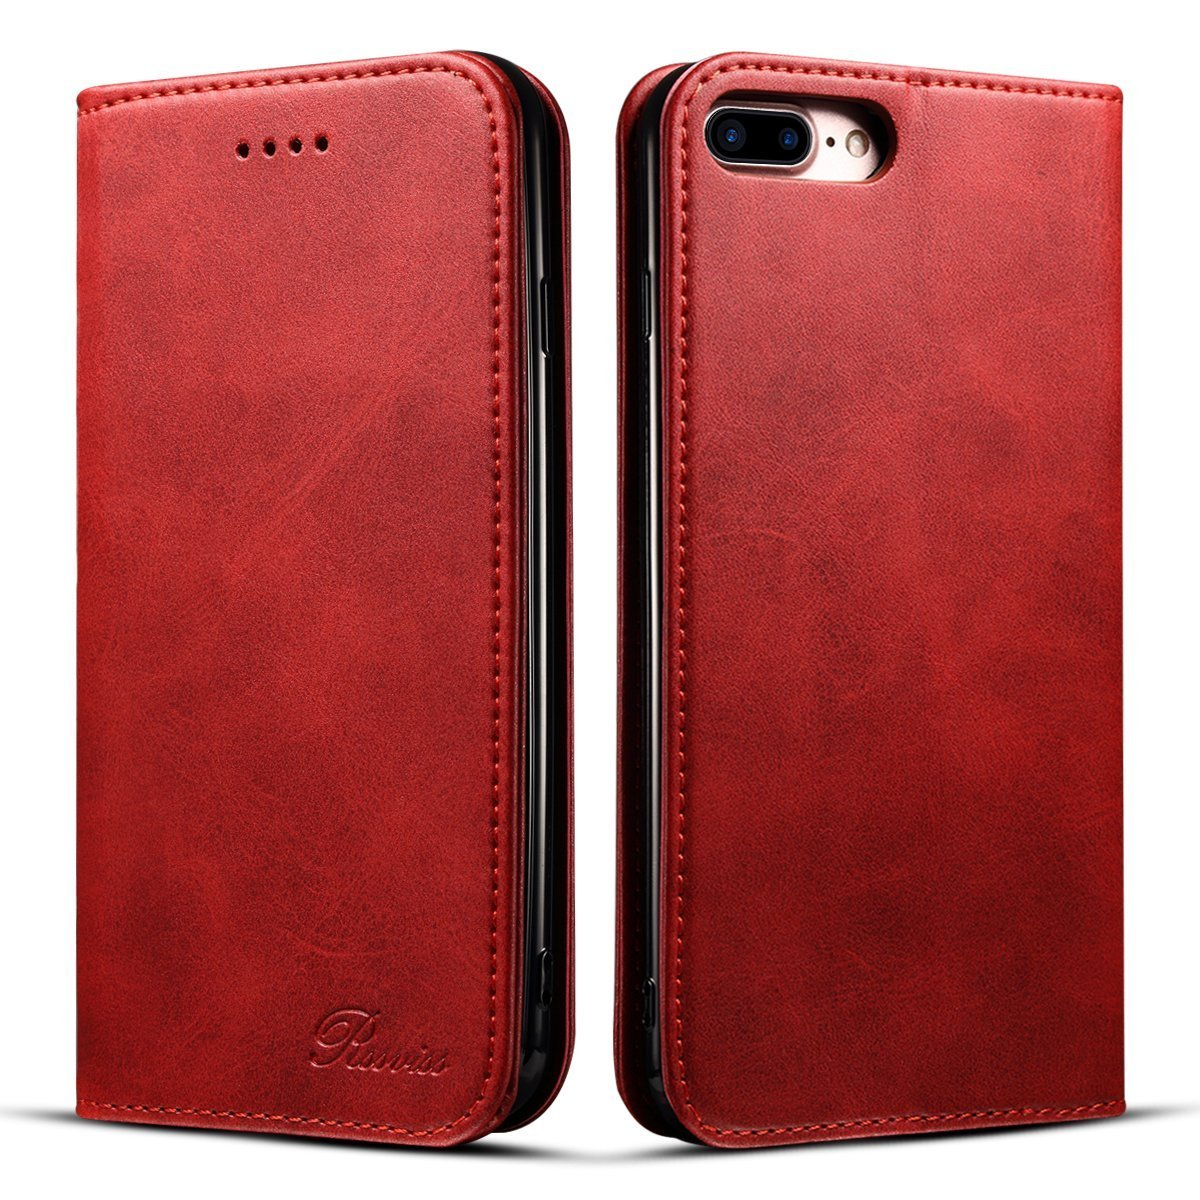 iPhone 7 Plus Case - Rssviss [Simple Retro Style]Handmade Soft Leather Flip Wallet Case [Magnetic Closure][Credit Card Slot]For iPhone 8 Plus 5.5 inch- Red